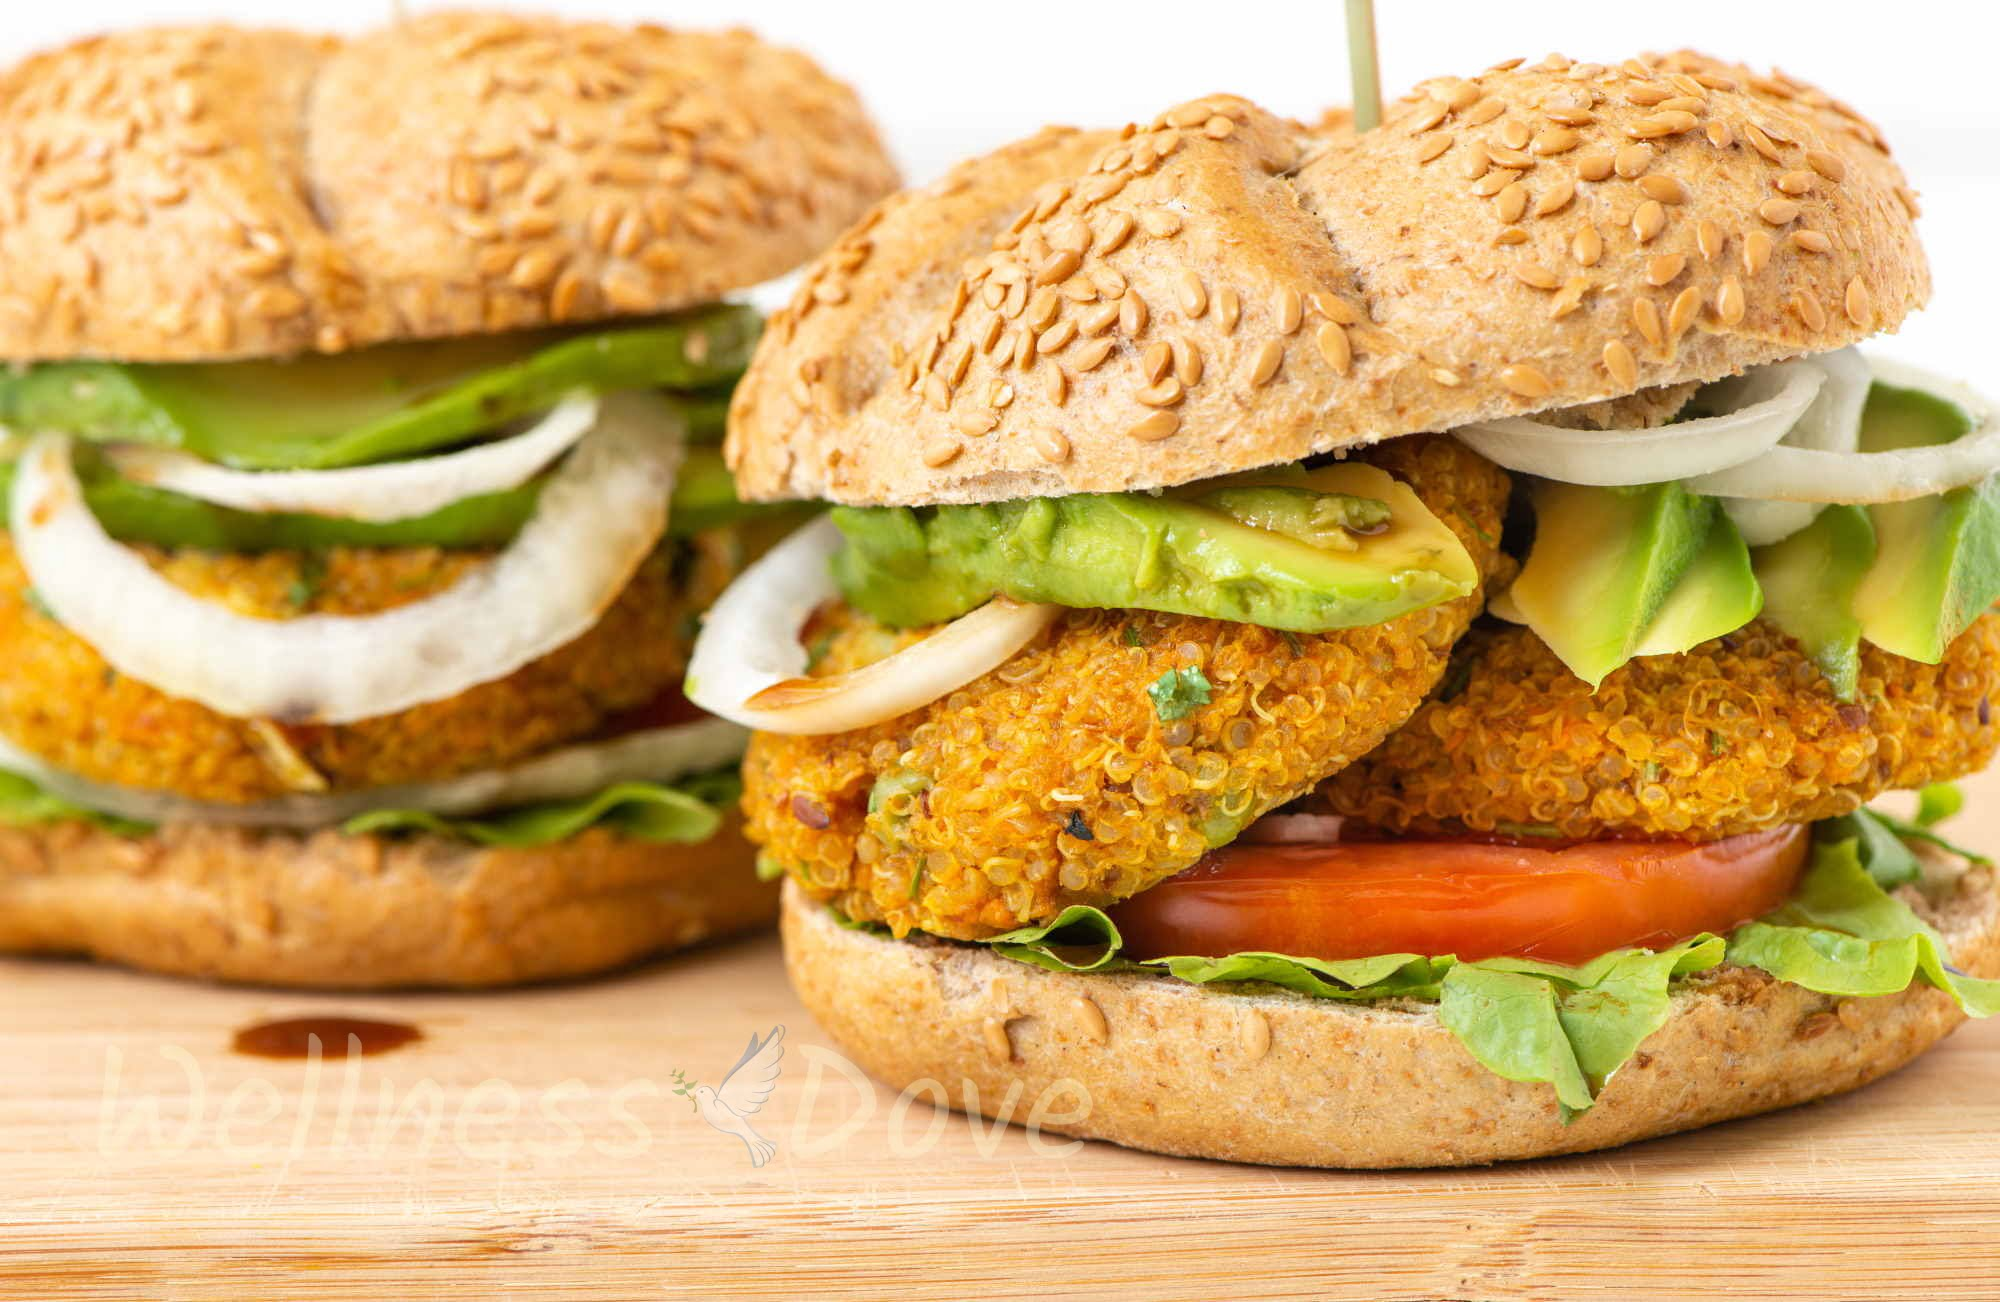 Two vegan burgers, front view